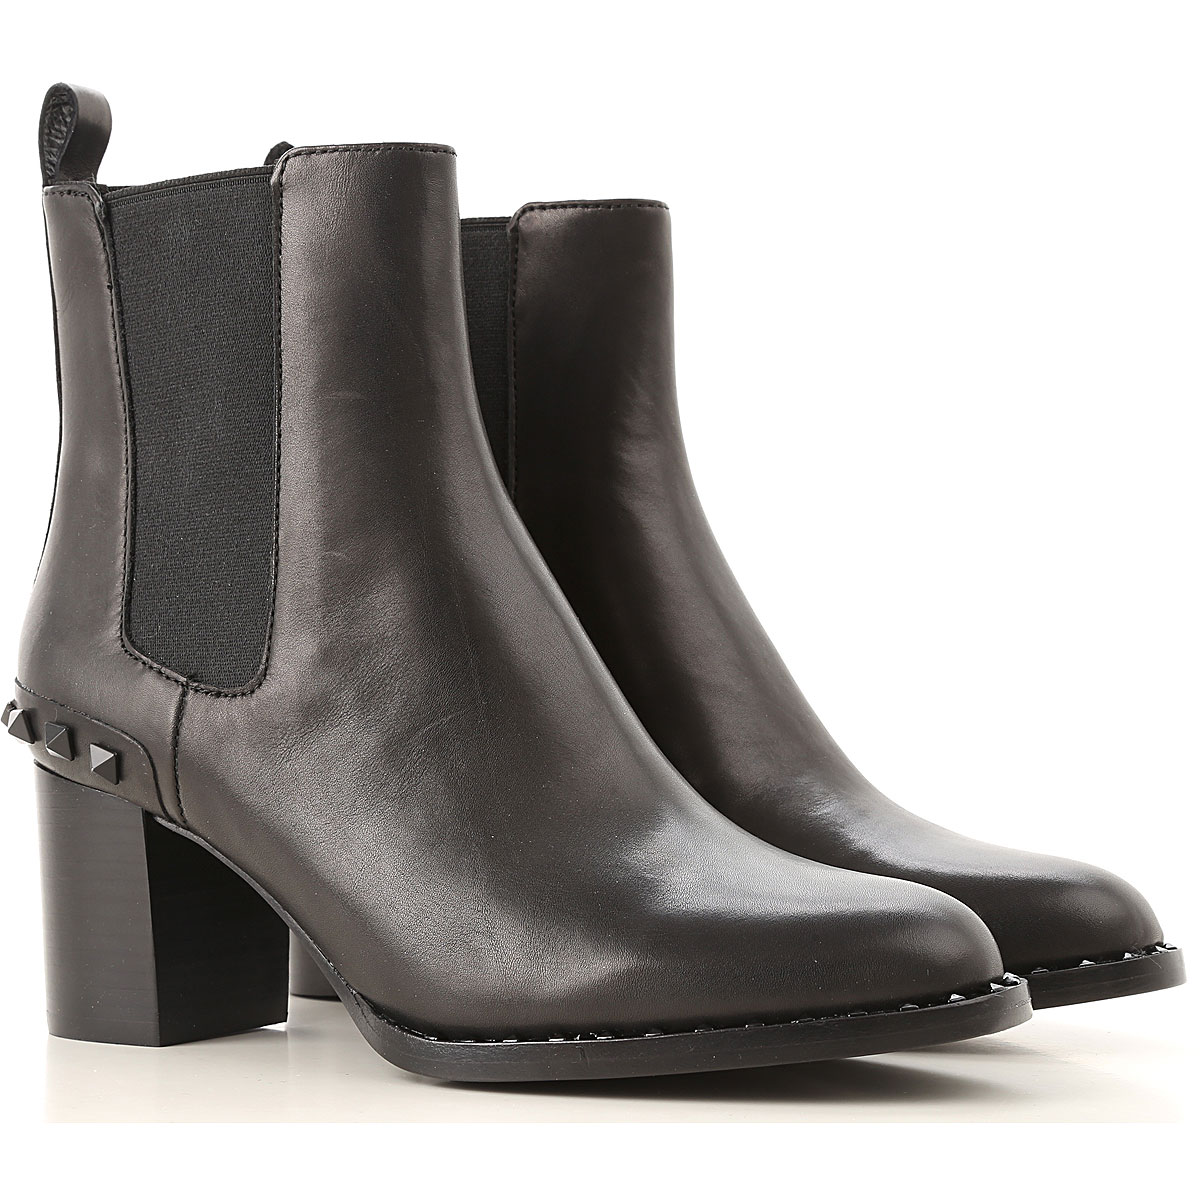 Ash Chelsea Boots for Women On Sale, Black, Leather, 2019, 10 5 6